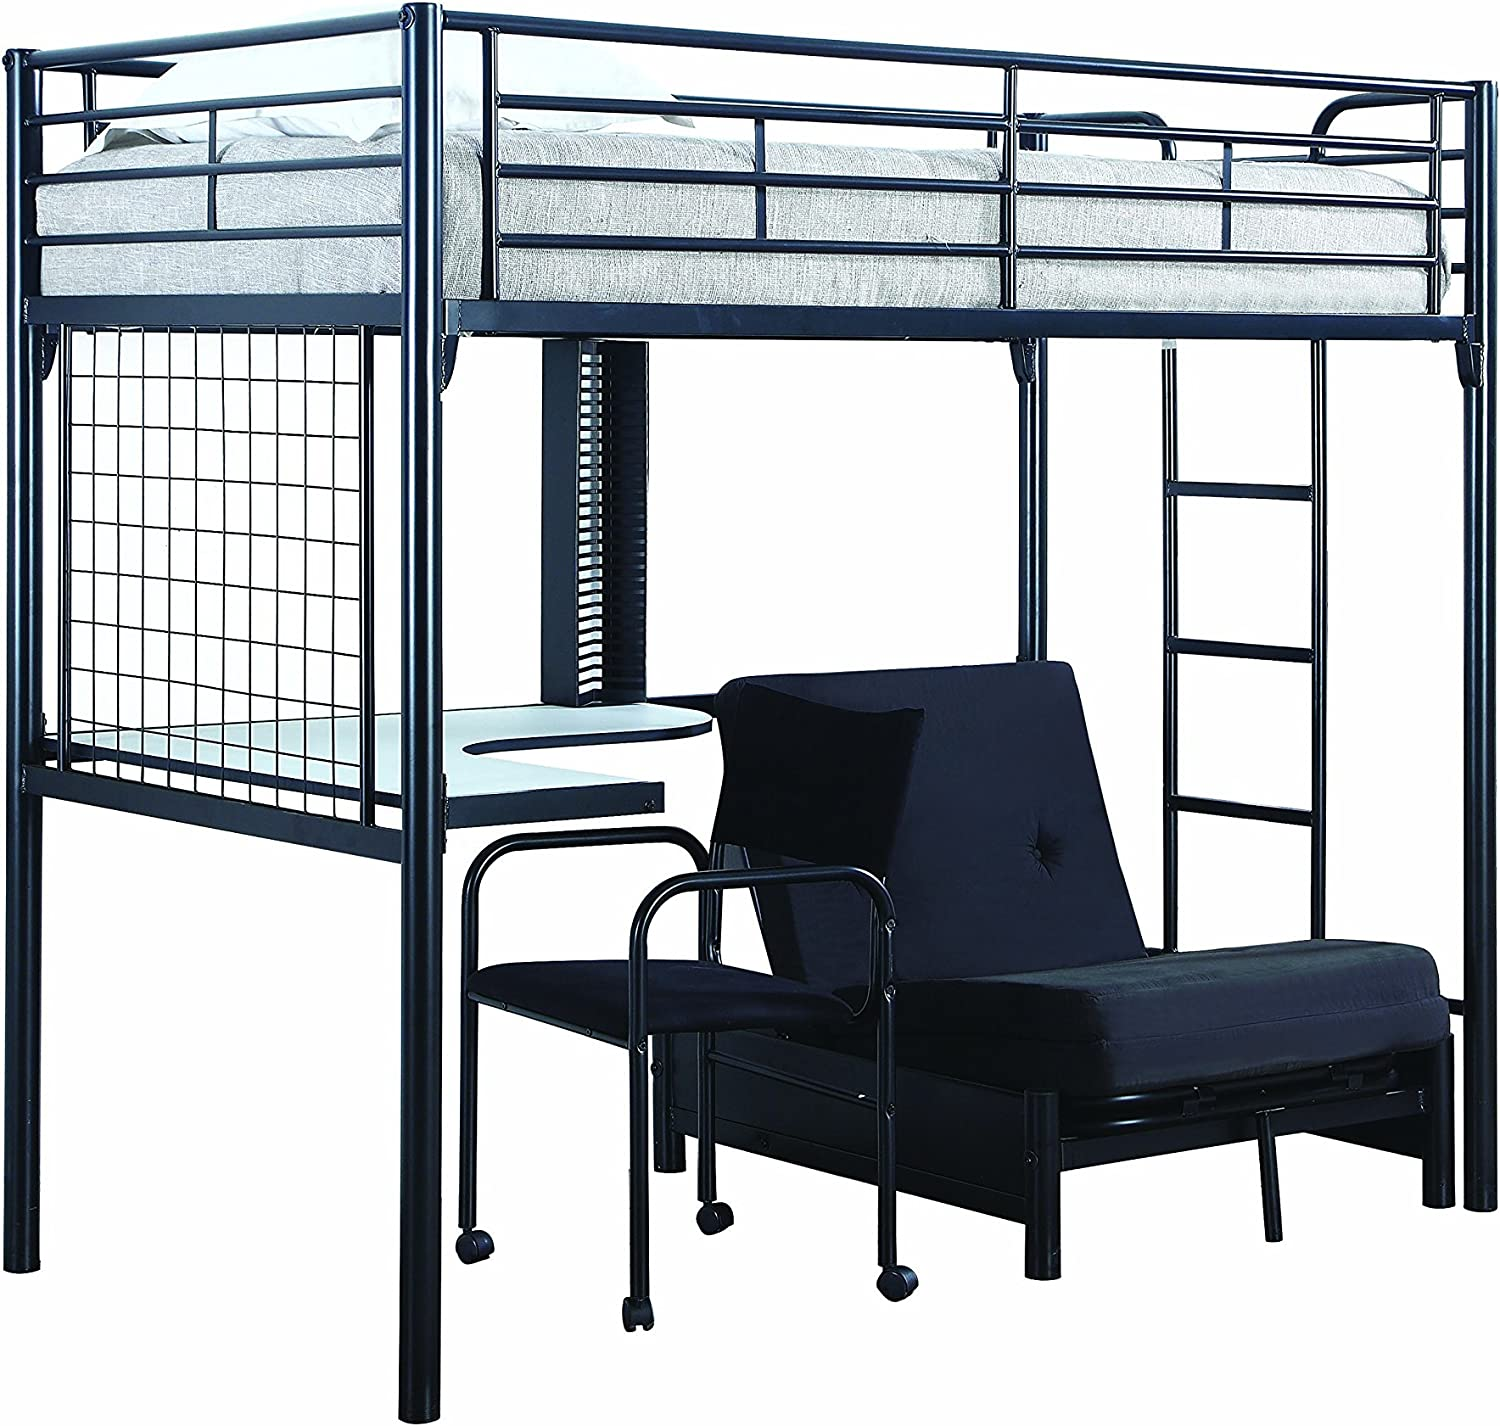 Amazon Com Twin Workstation Loft Bed Black Furniture Decor